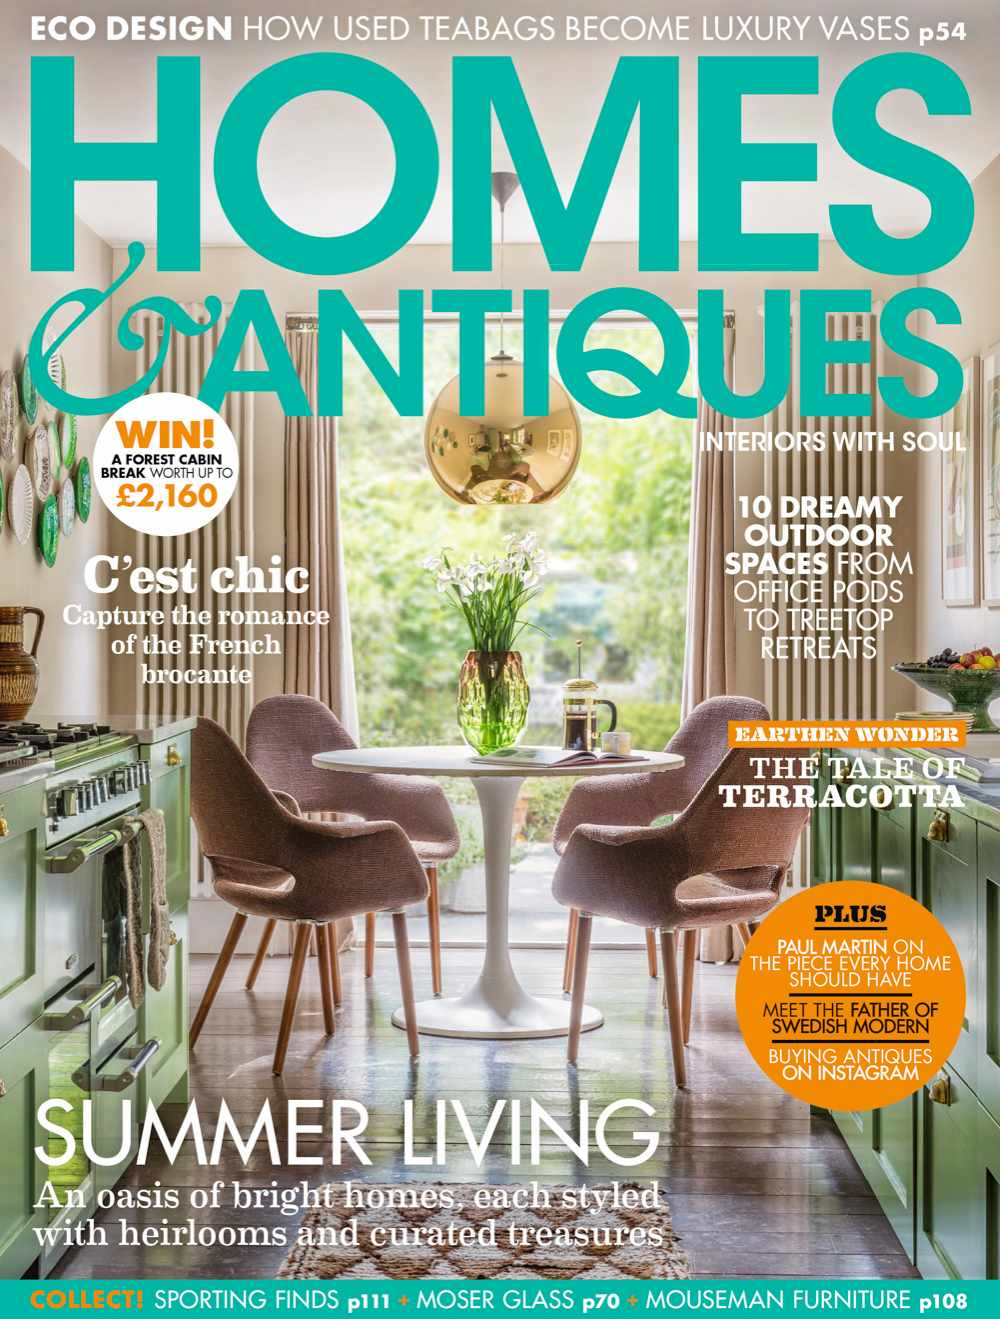 Homes & Antiques magazine August 2019 issue